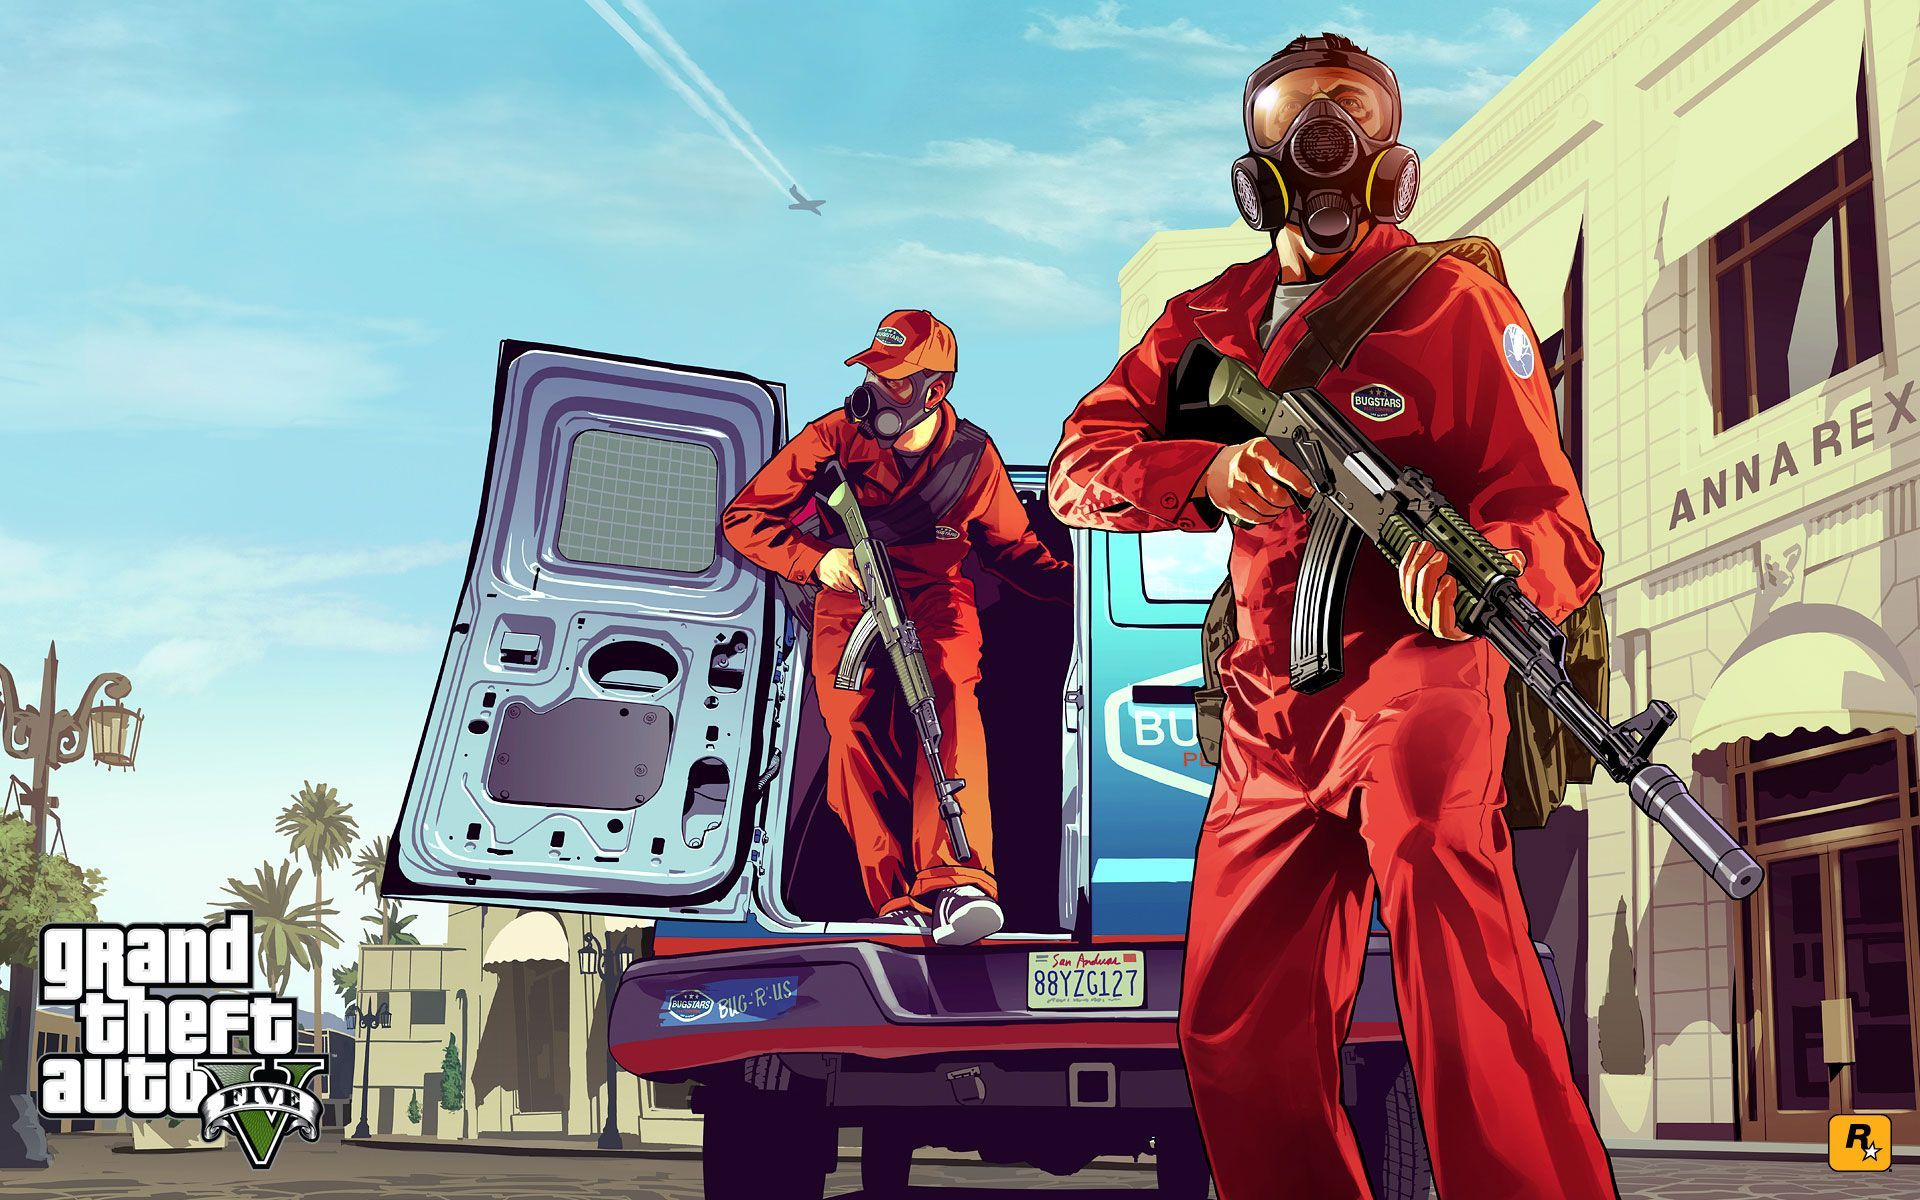 Rich Gta 5 Wallpapers Top Free Rich Gta 5 Backgrounds Wallpaperaccess